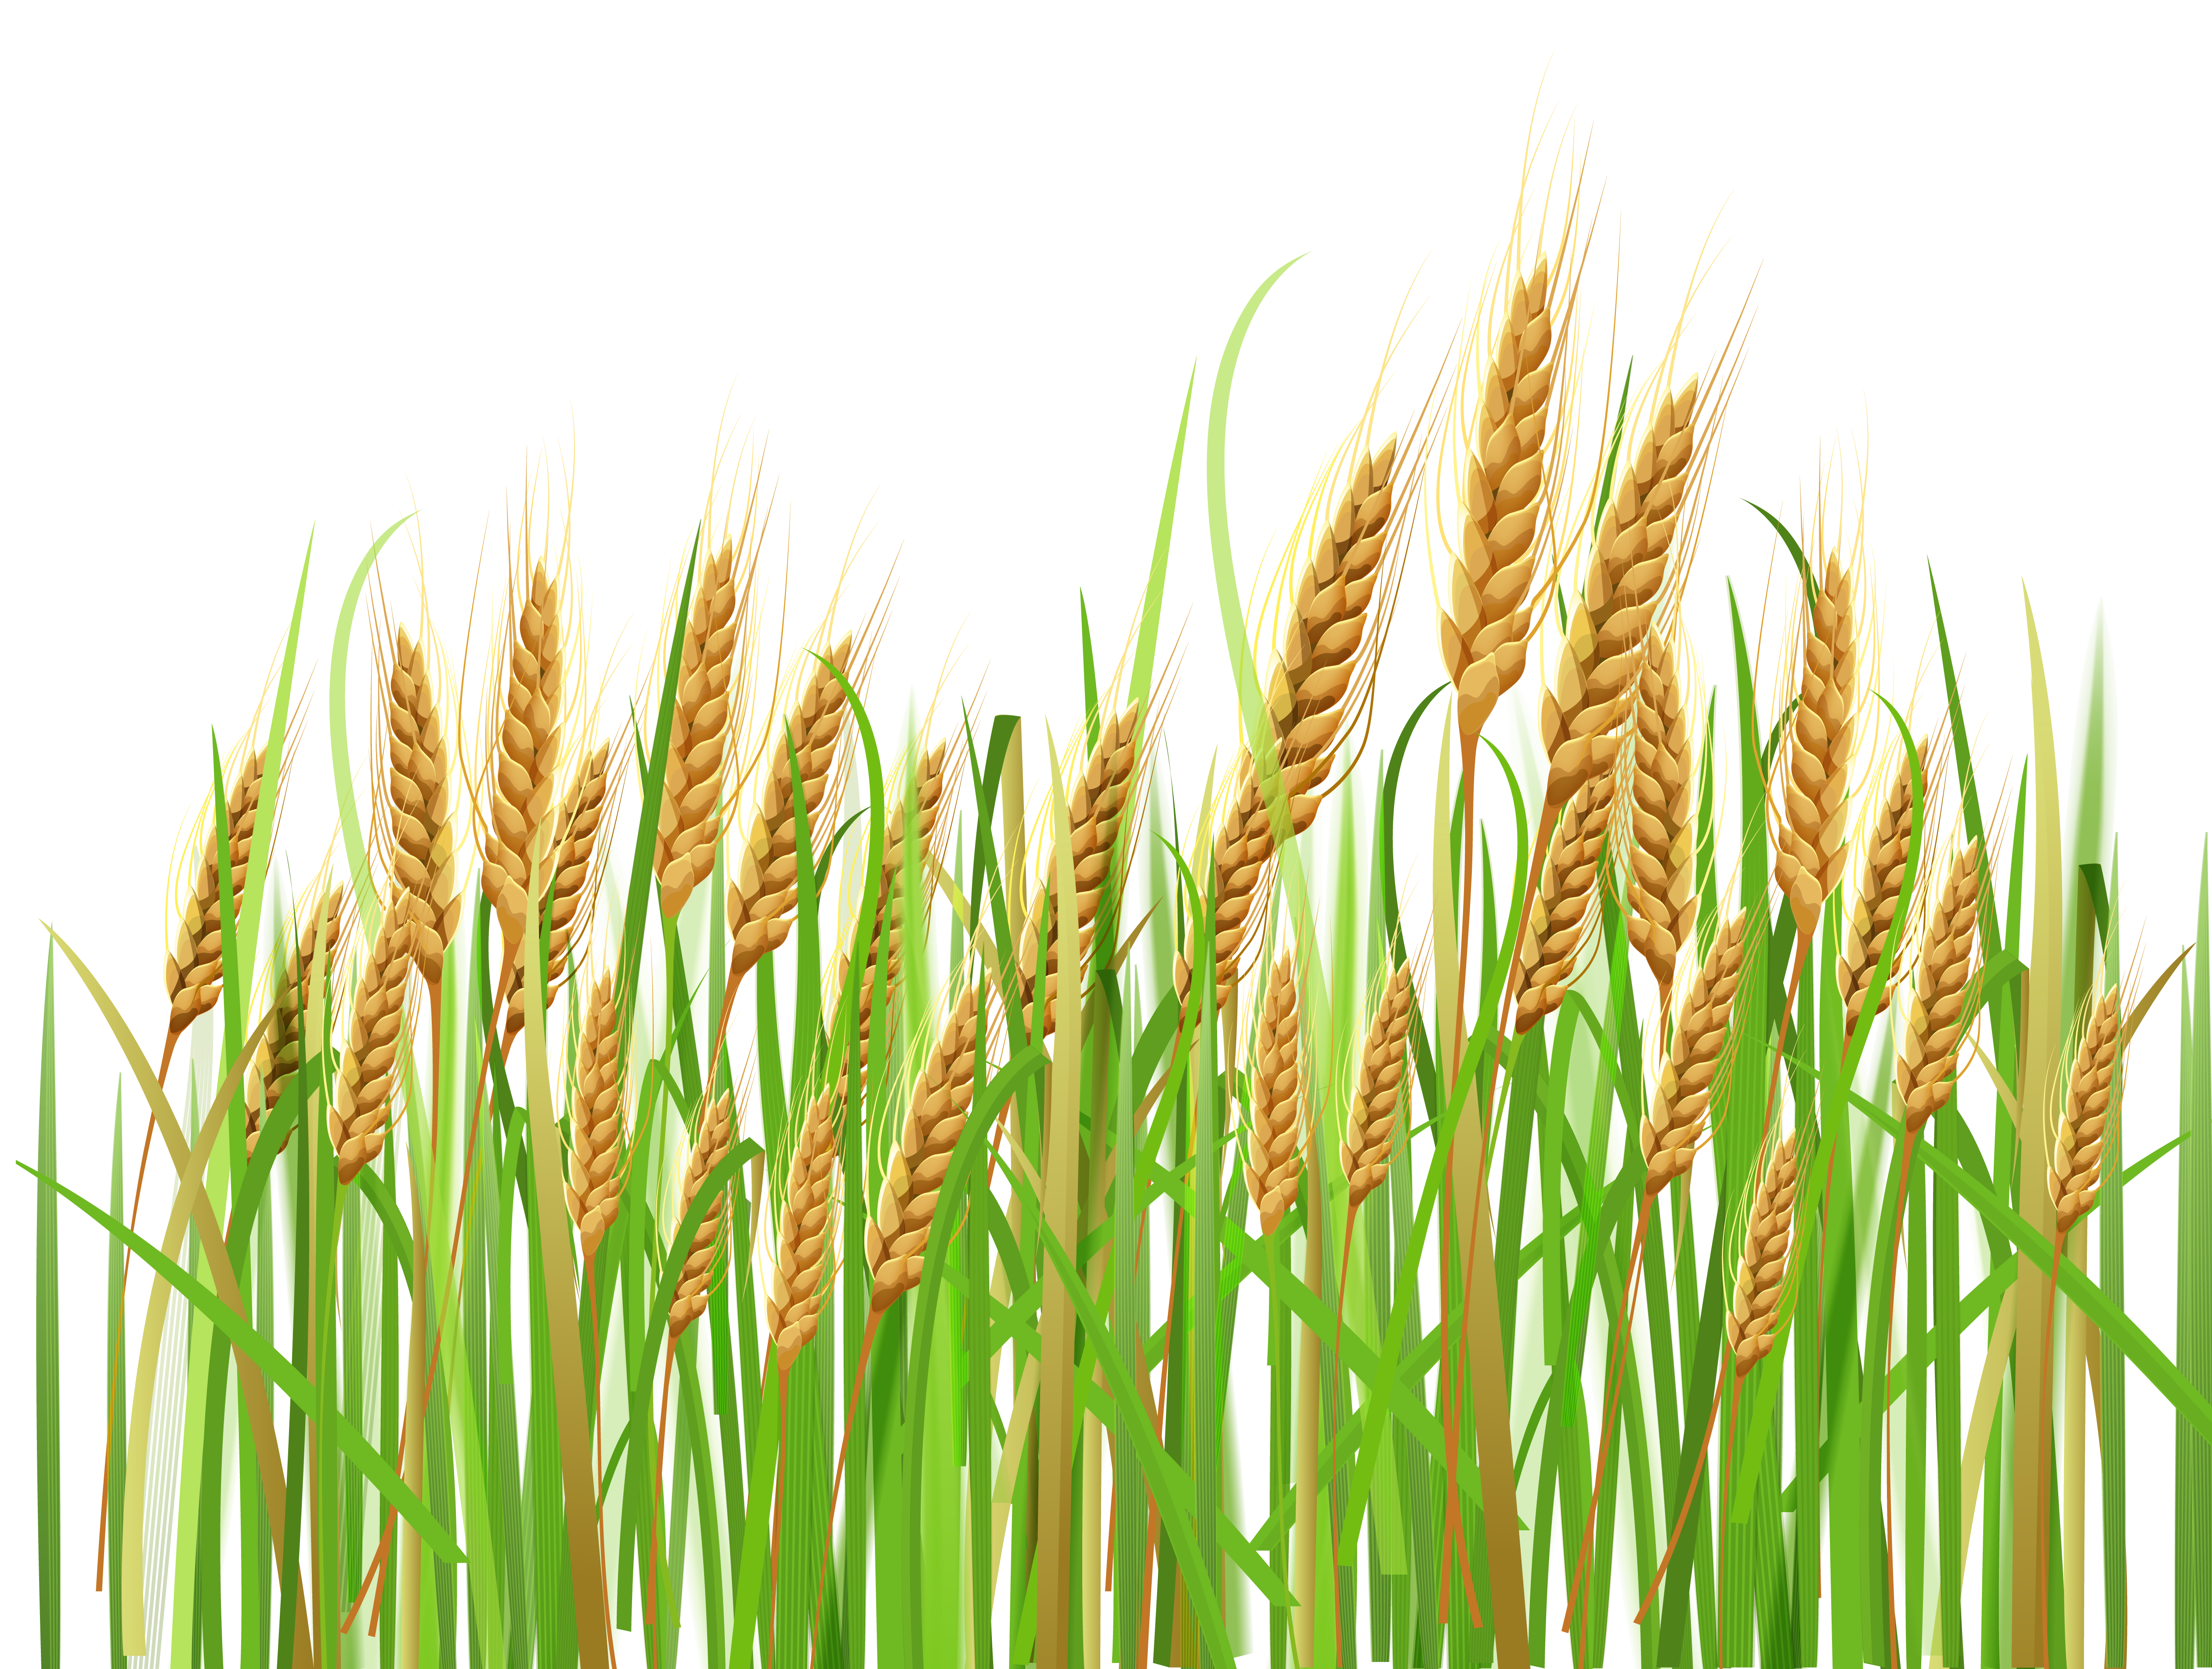 Ears of wheat png. Cereal clipart transparent background